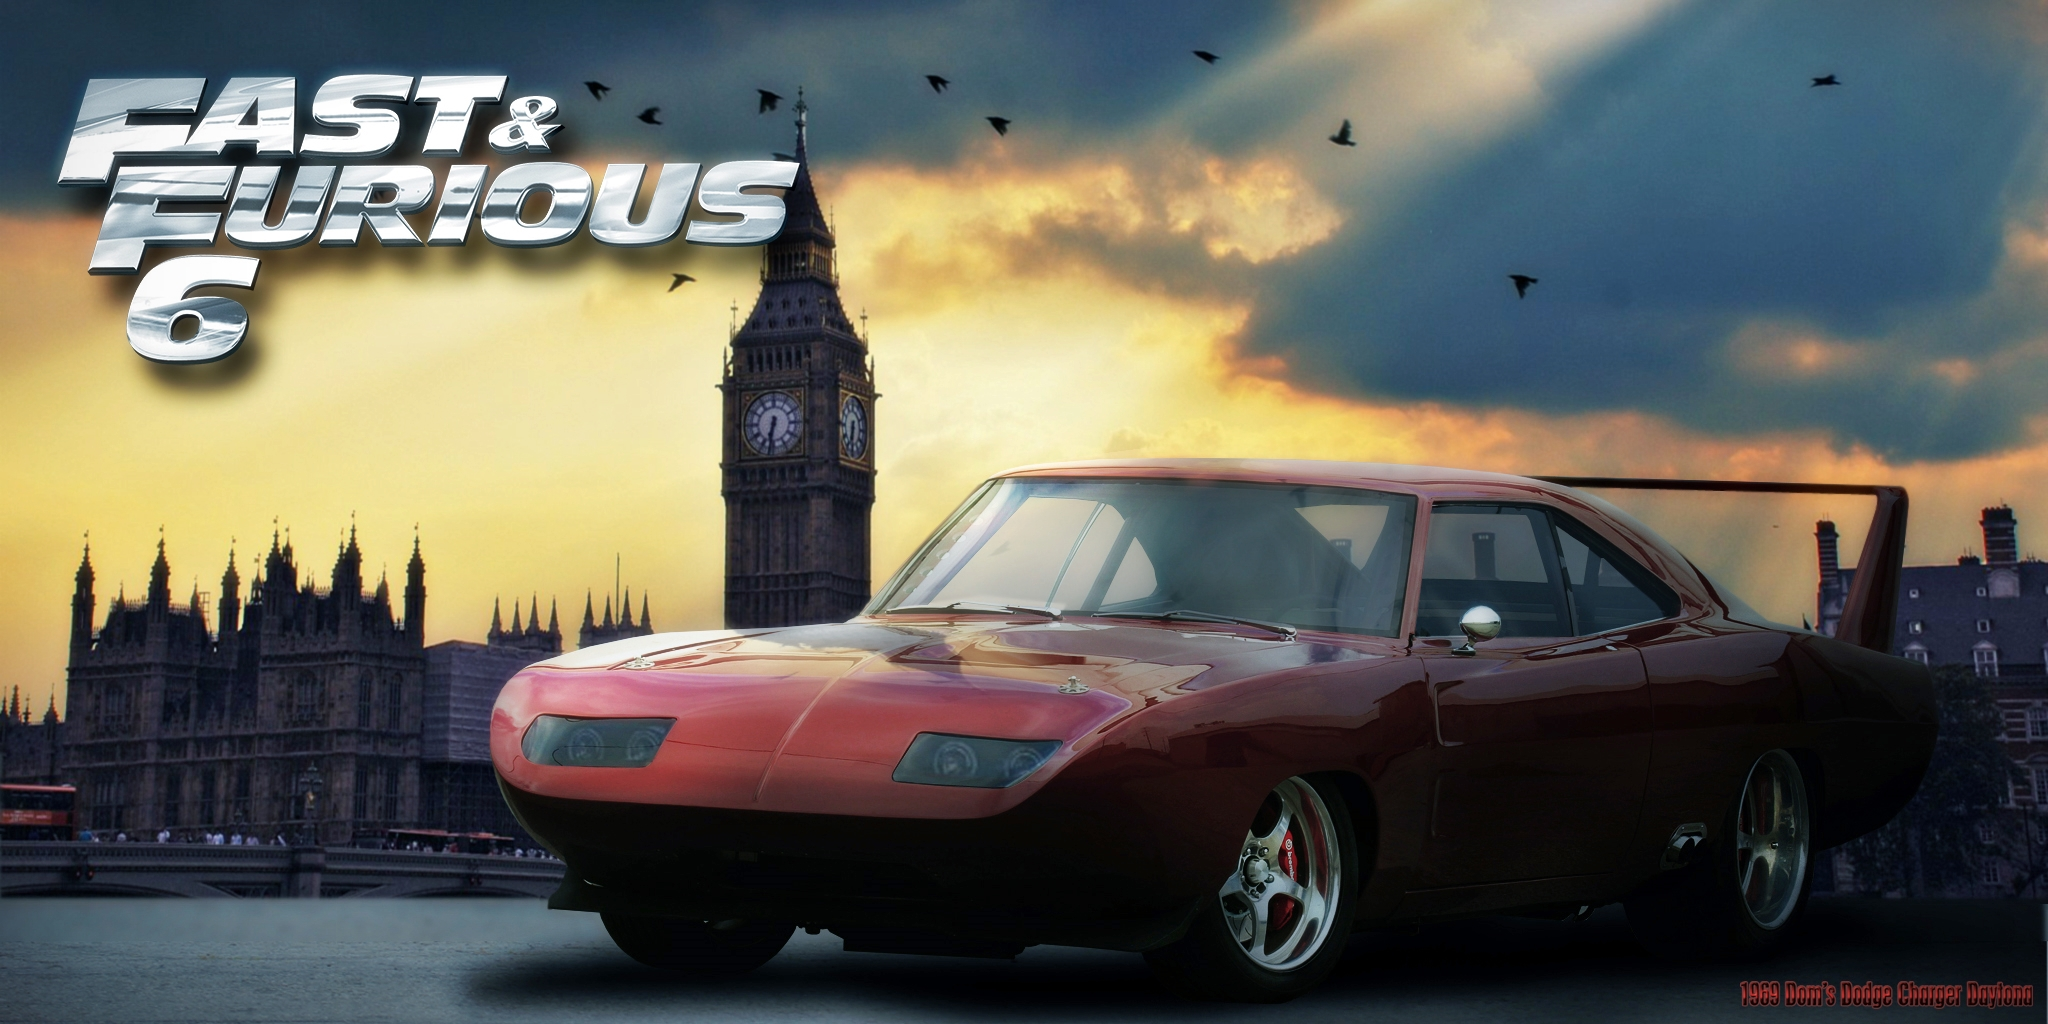 fast and furious 6 1969 dodge charger daytona by 212thtrooper - Dodge Charger 1969 Fast And Furious 6